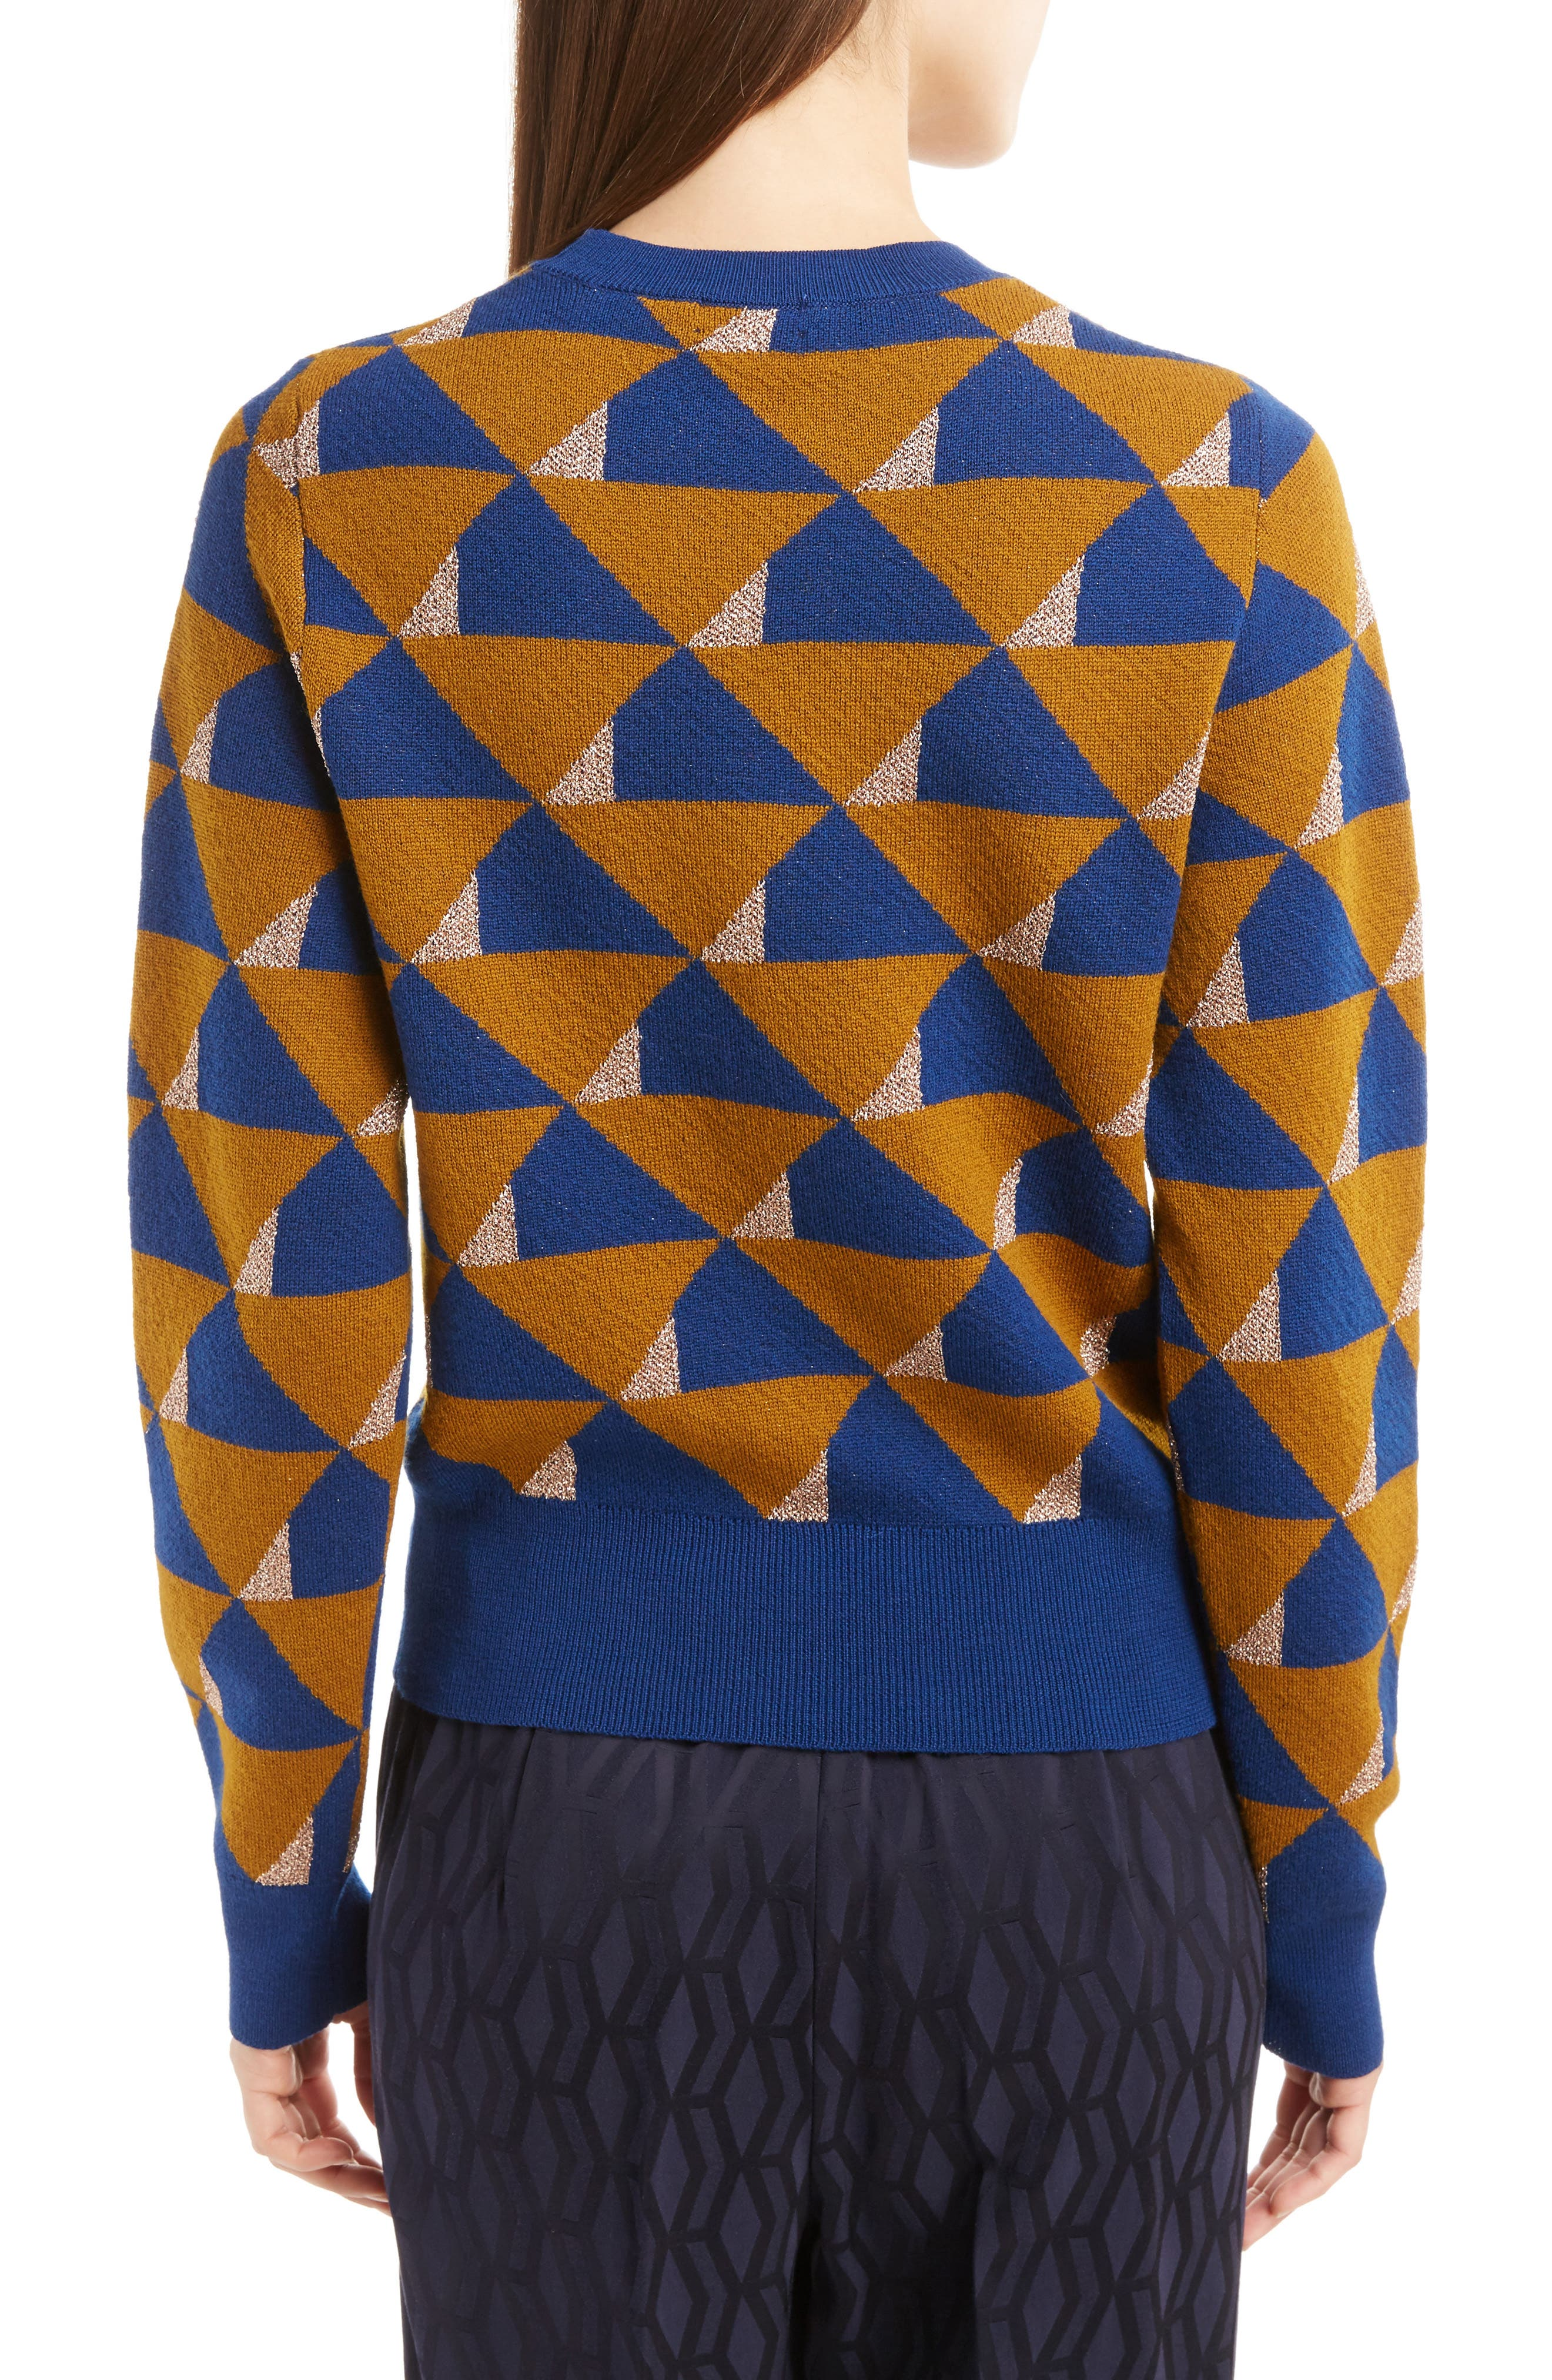 Graphic Knit Merino Wool Sweater,                             Alternate thumbnail 2, color,                             400